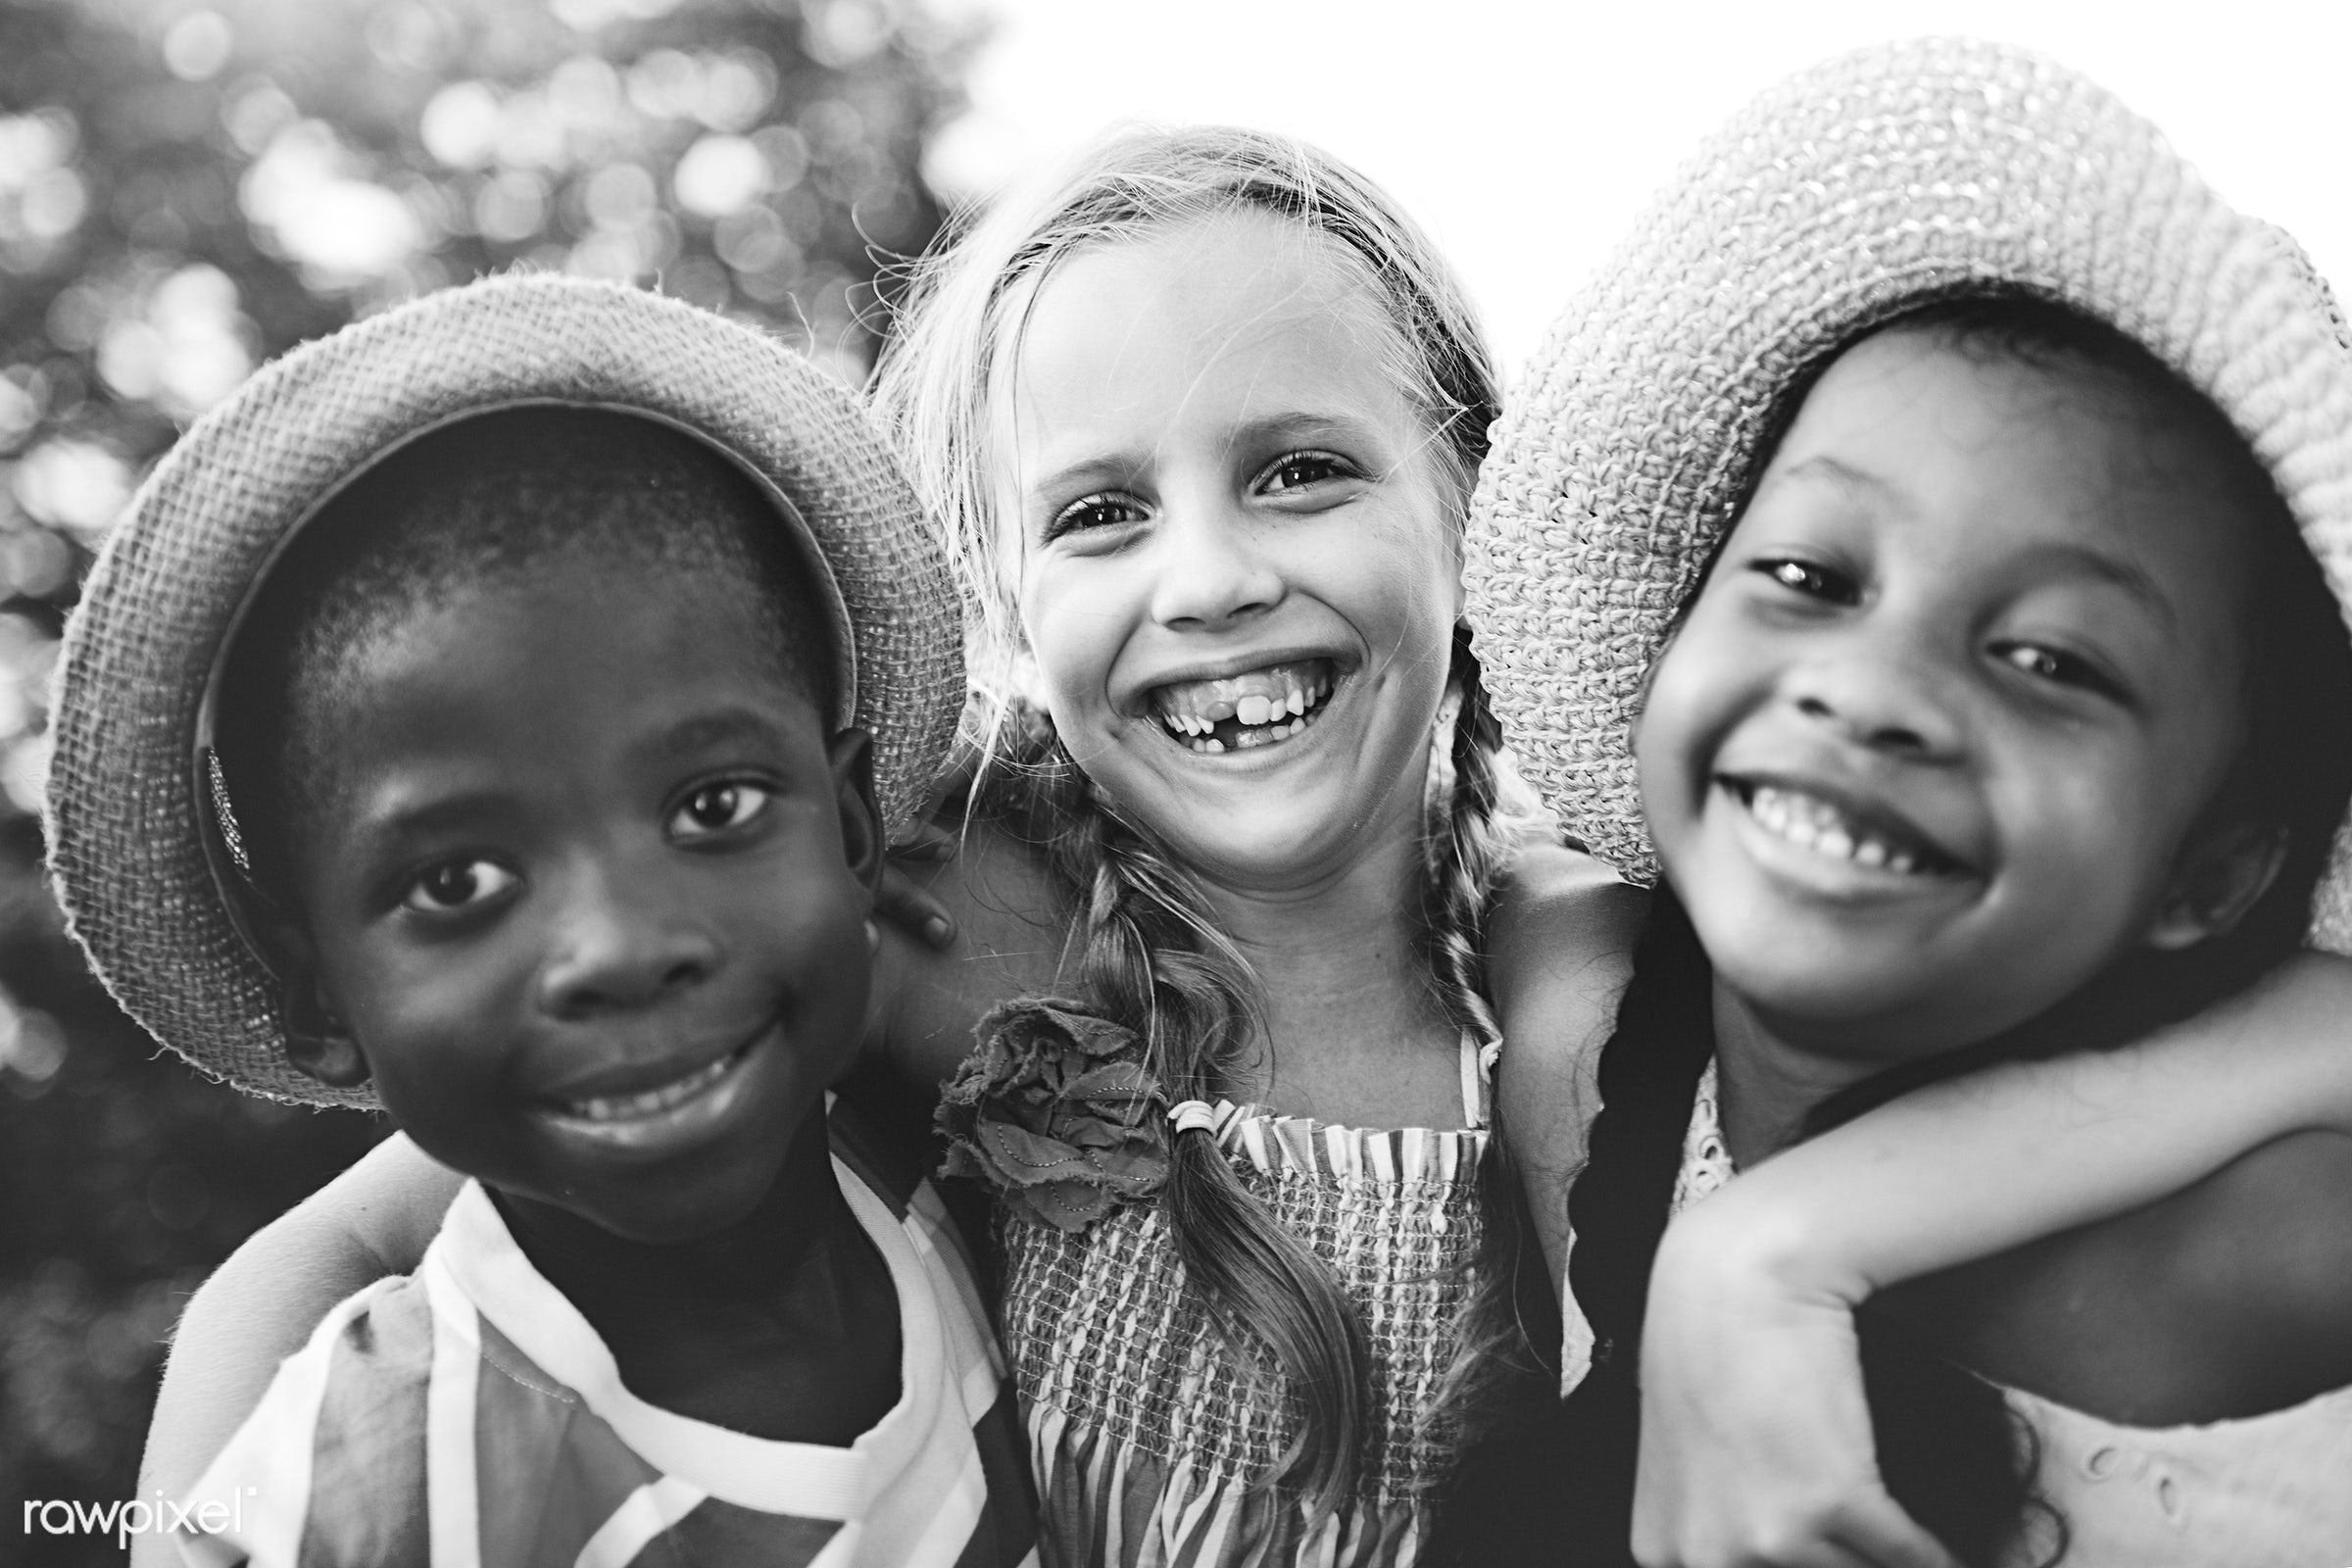 children, people, friendship, cheerful, smiling, closeup, black, diversity, african descent, togetherness, happiness, kids,...